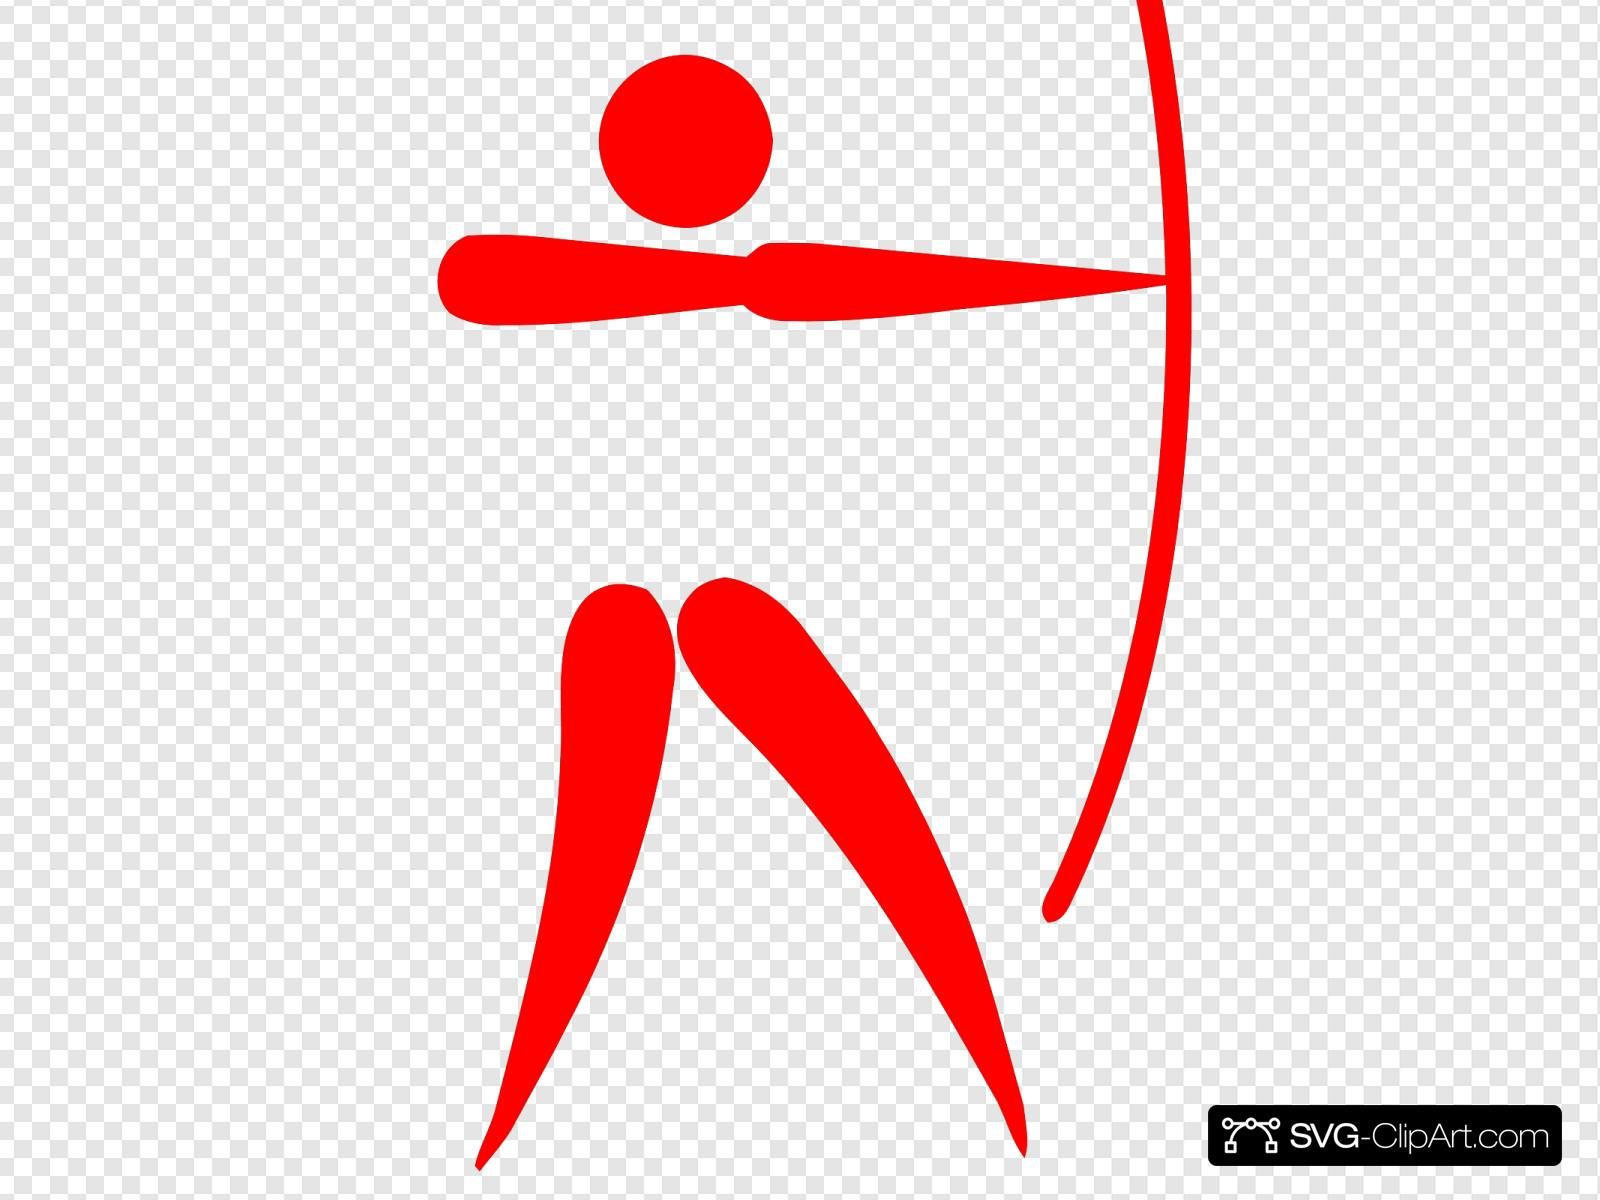 Archer jpg clipart graphic library download Pictogram Archer Red Clip art, Icon and SVG - SVG Clipart graphic library download